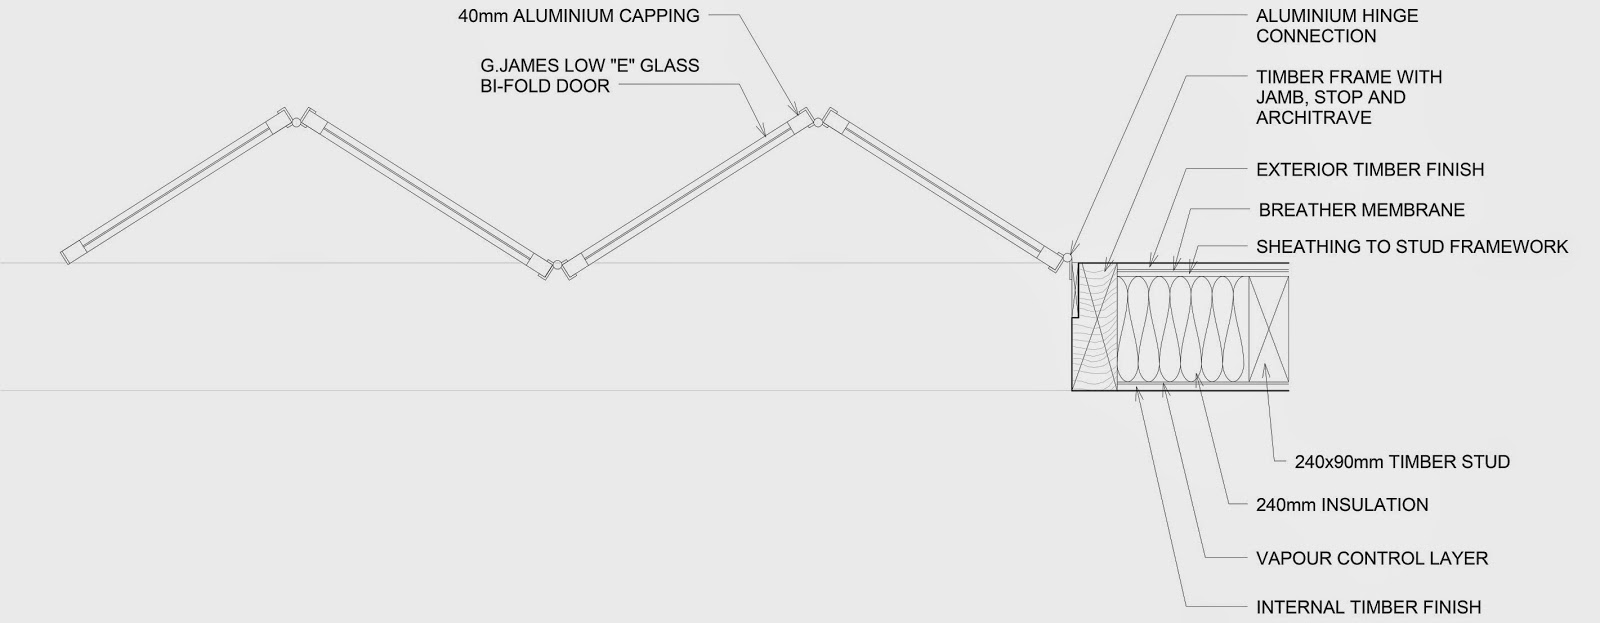 Scaffolding 101 What You Need To Know as well 12966 302 as well Hogwarts Castle Architecture also Chap3 together with Entry Door Panels. on parts of a window frame nomenclature